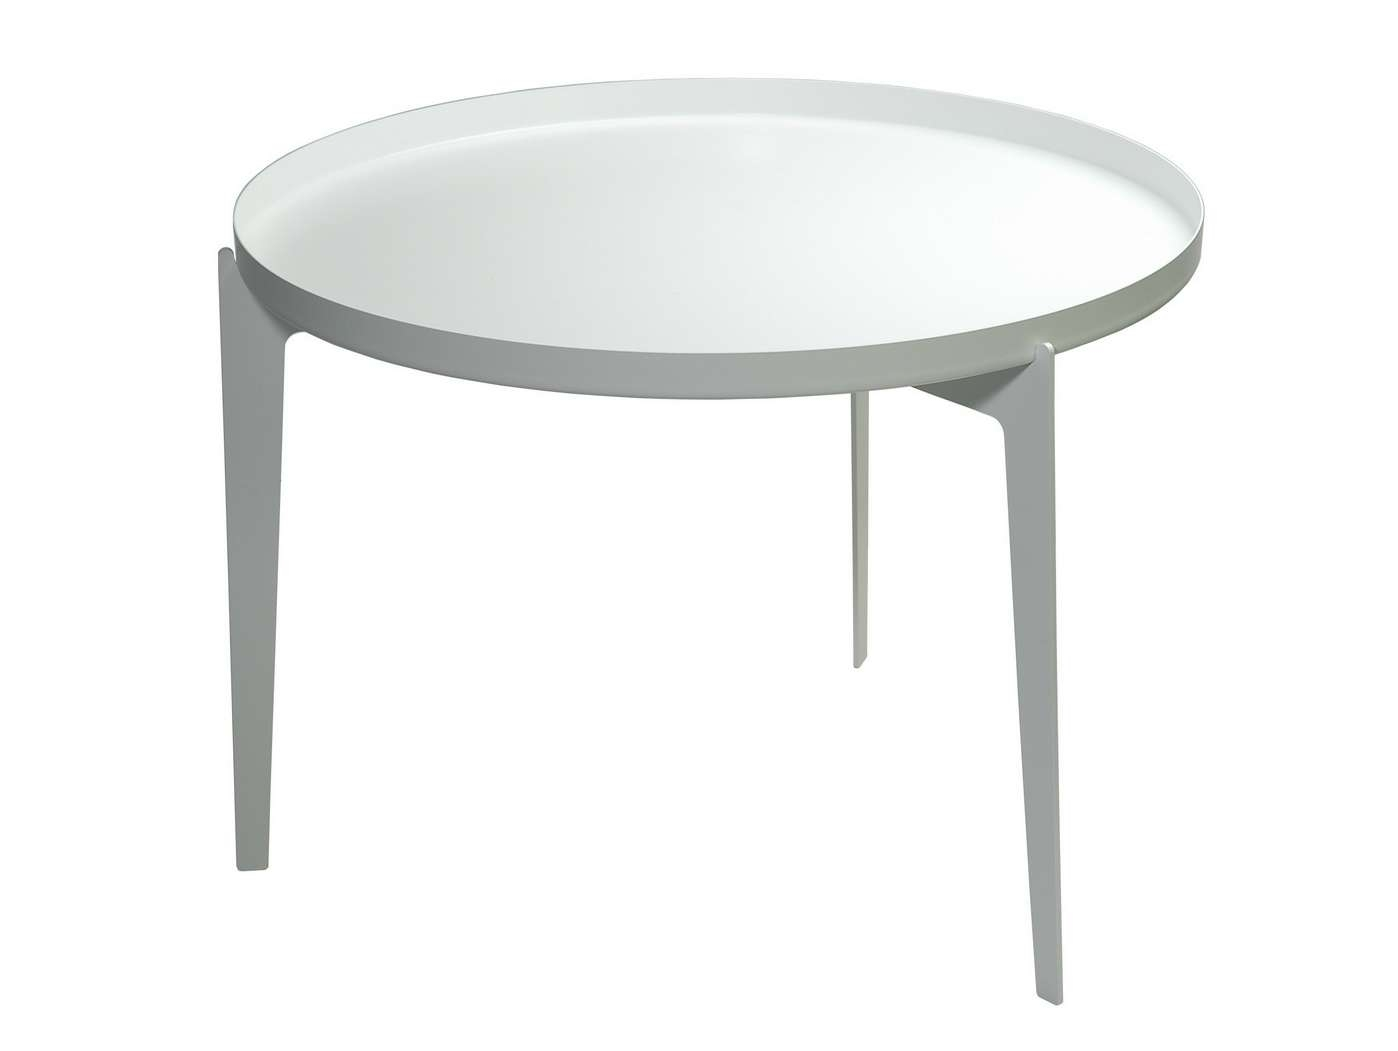 Latest Round Tray Coffee Tables Pertaining To Round Coffee Table: Remarkable Metal Round Tray Coffee Table (View 10 of 20)